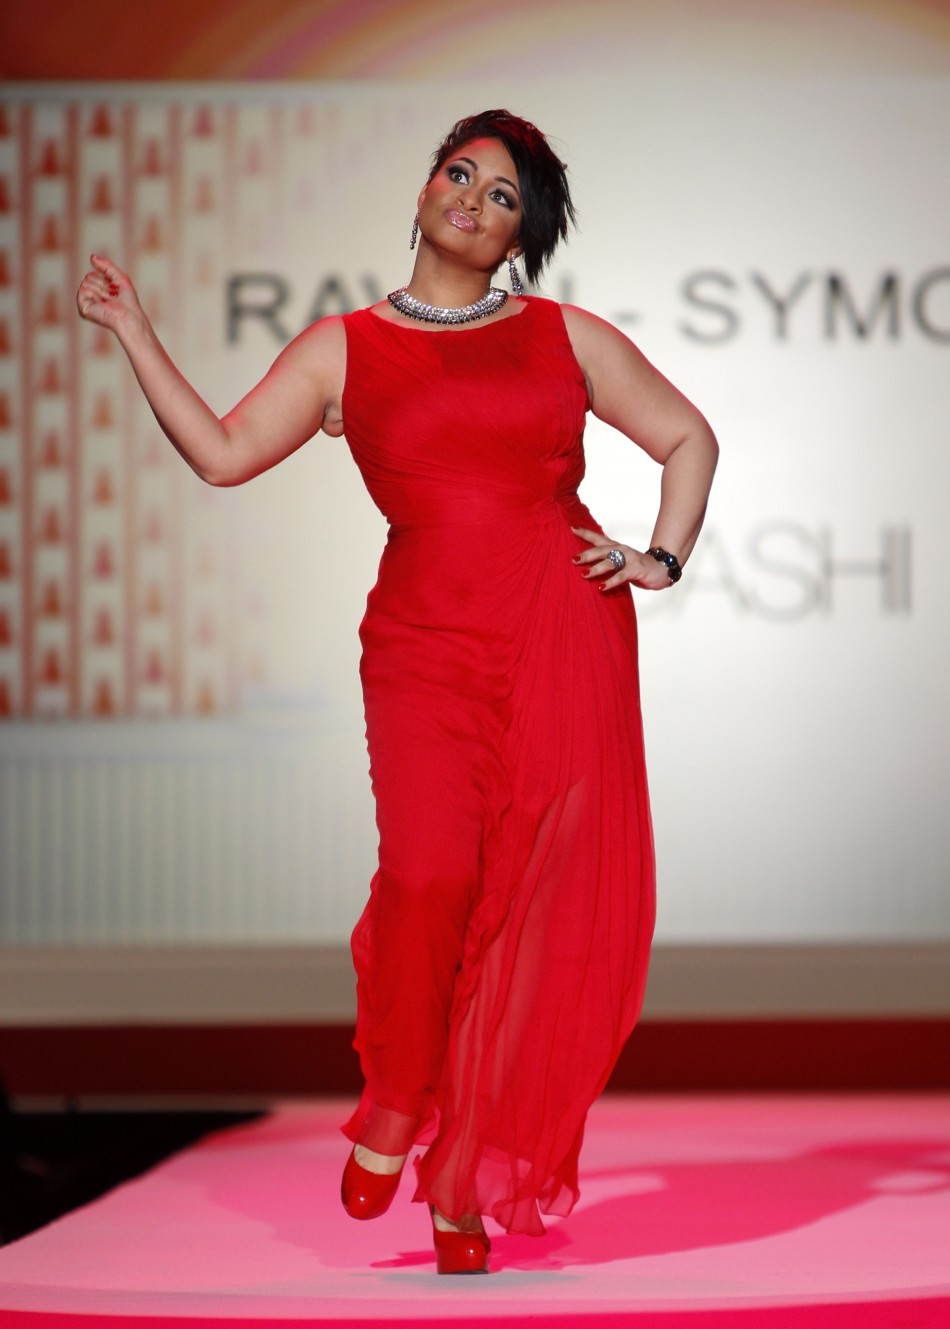 Raven Symone Before And After Weight Loss Raven Symone Flaunts D...